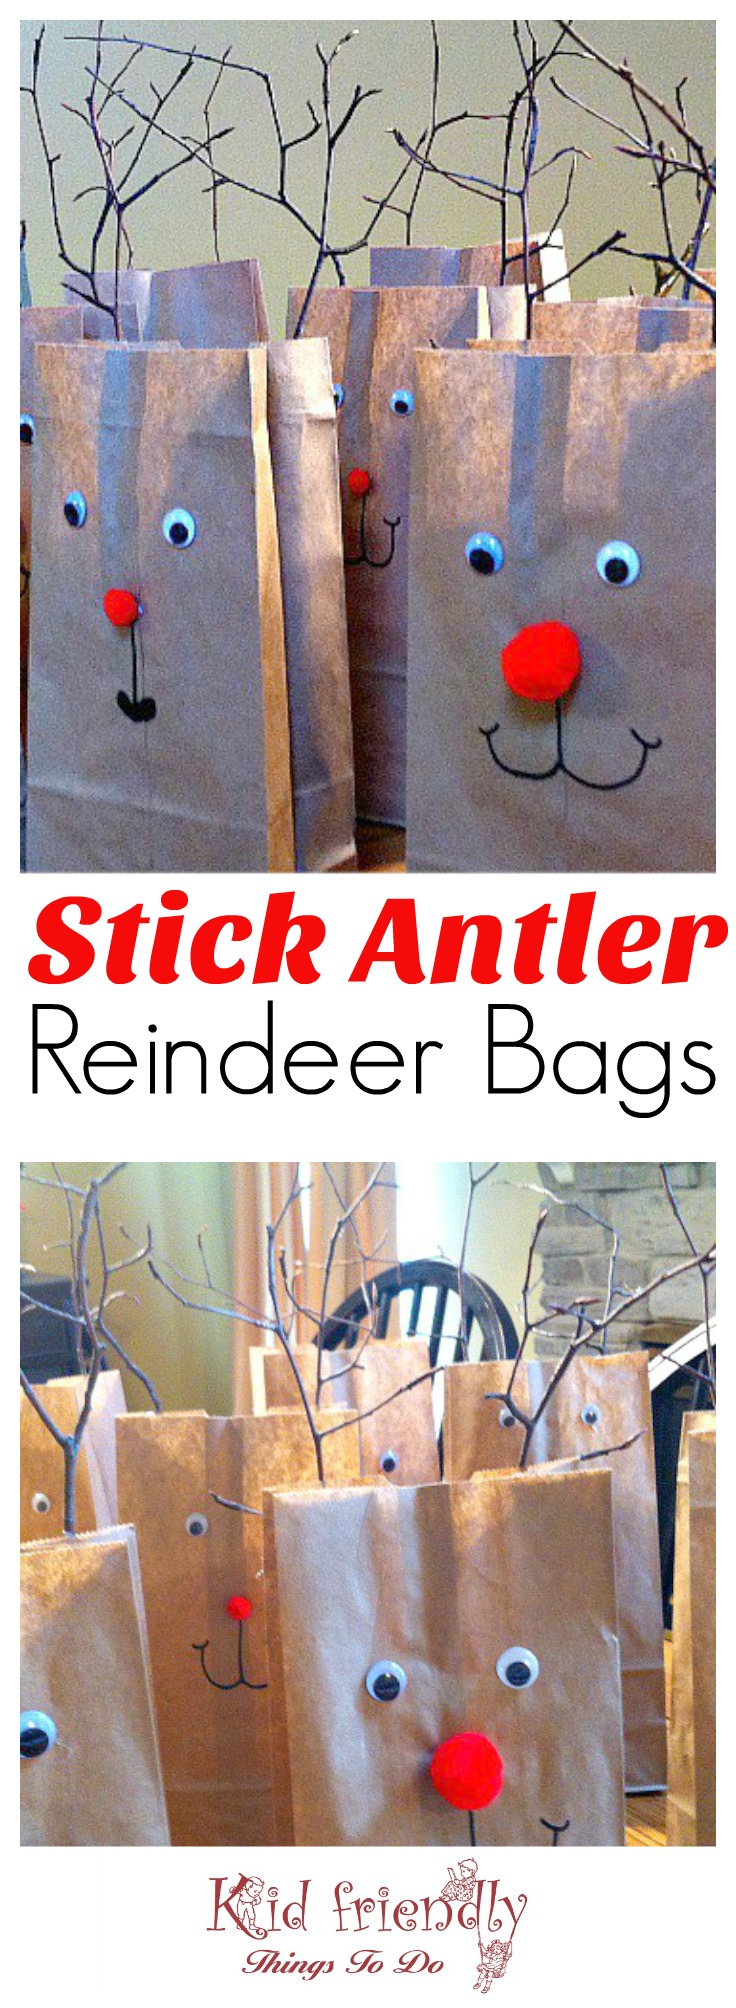 Twig Antlers Reindeer Bags for a kids Christmas party goody bag - www.kidfriendlythingstodo.com